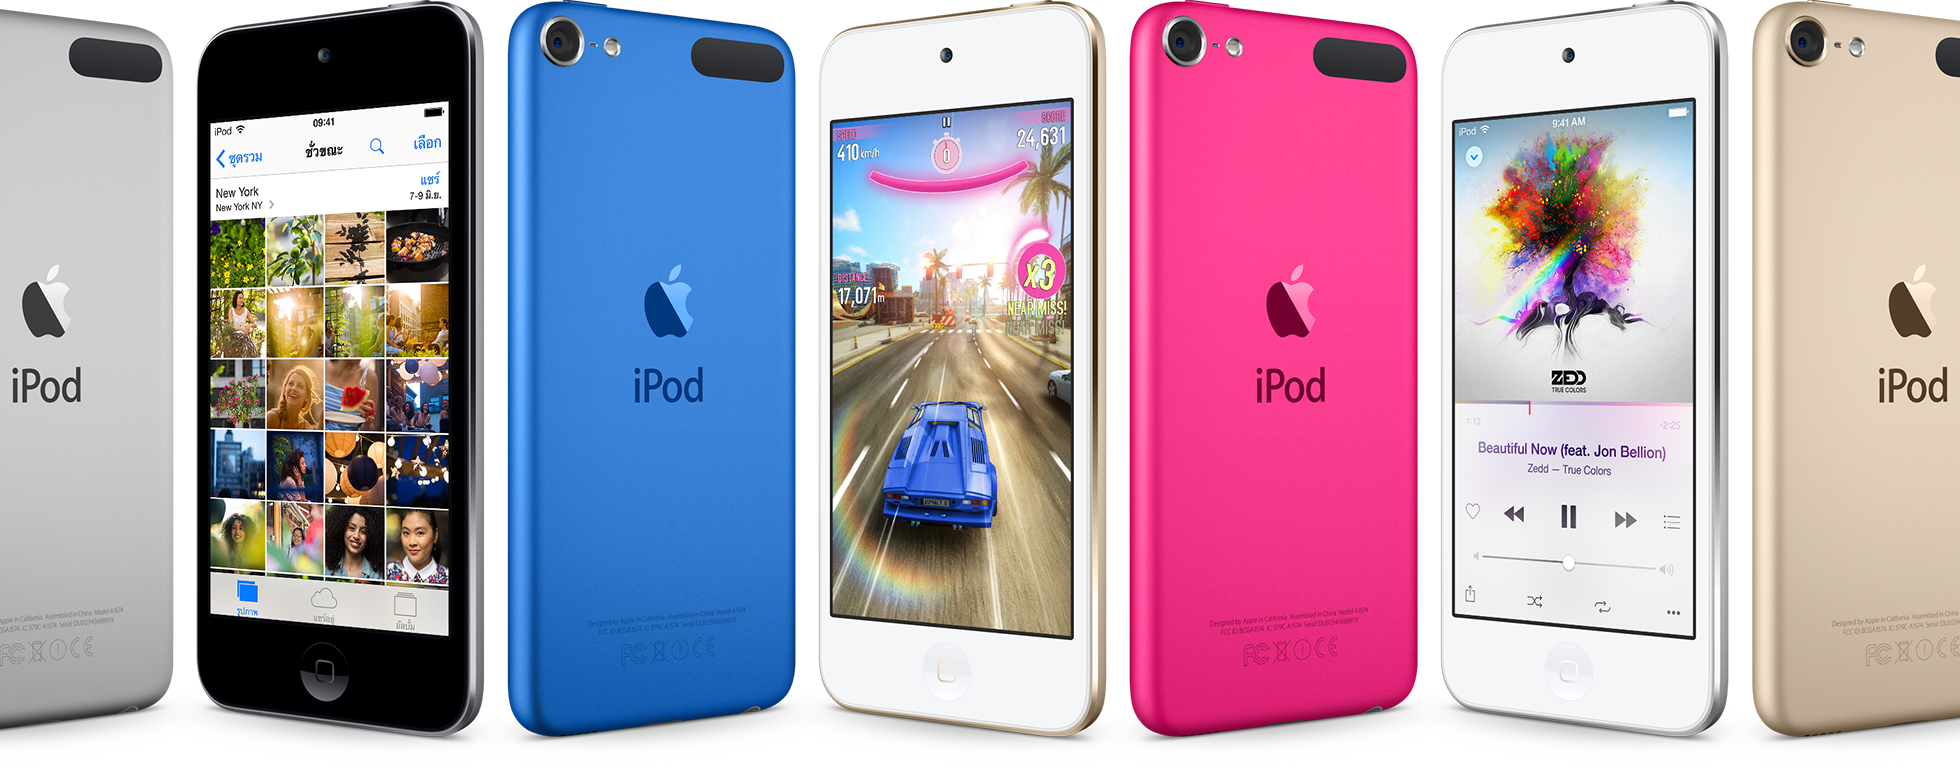 ipod-touch-l-201507_GEO_TH_LANG_TH